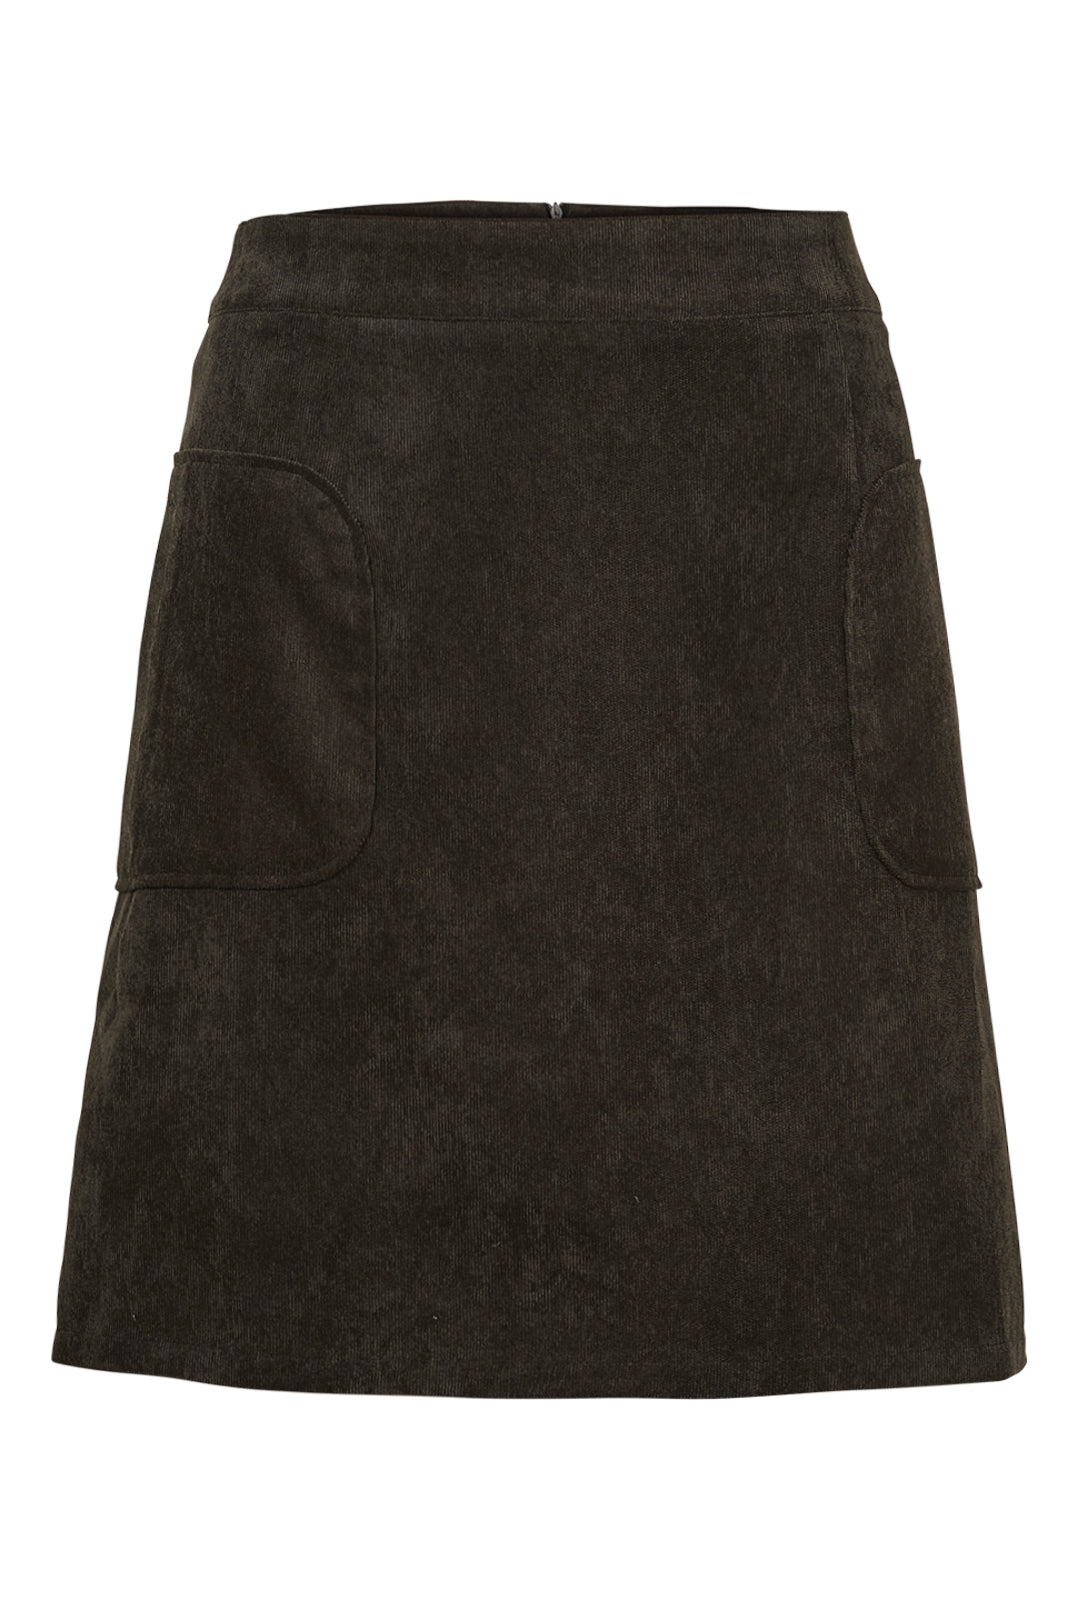 Florence Mini Skirt - Onyx - eb&ive Clothing - Skirt Mini